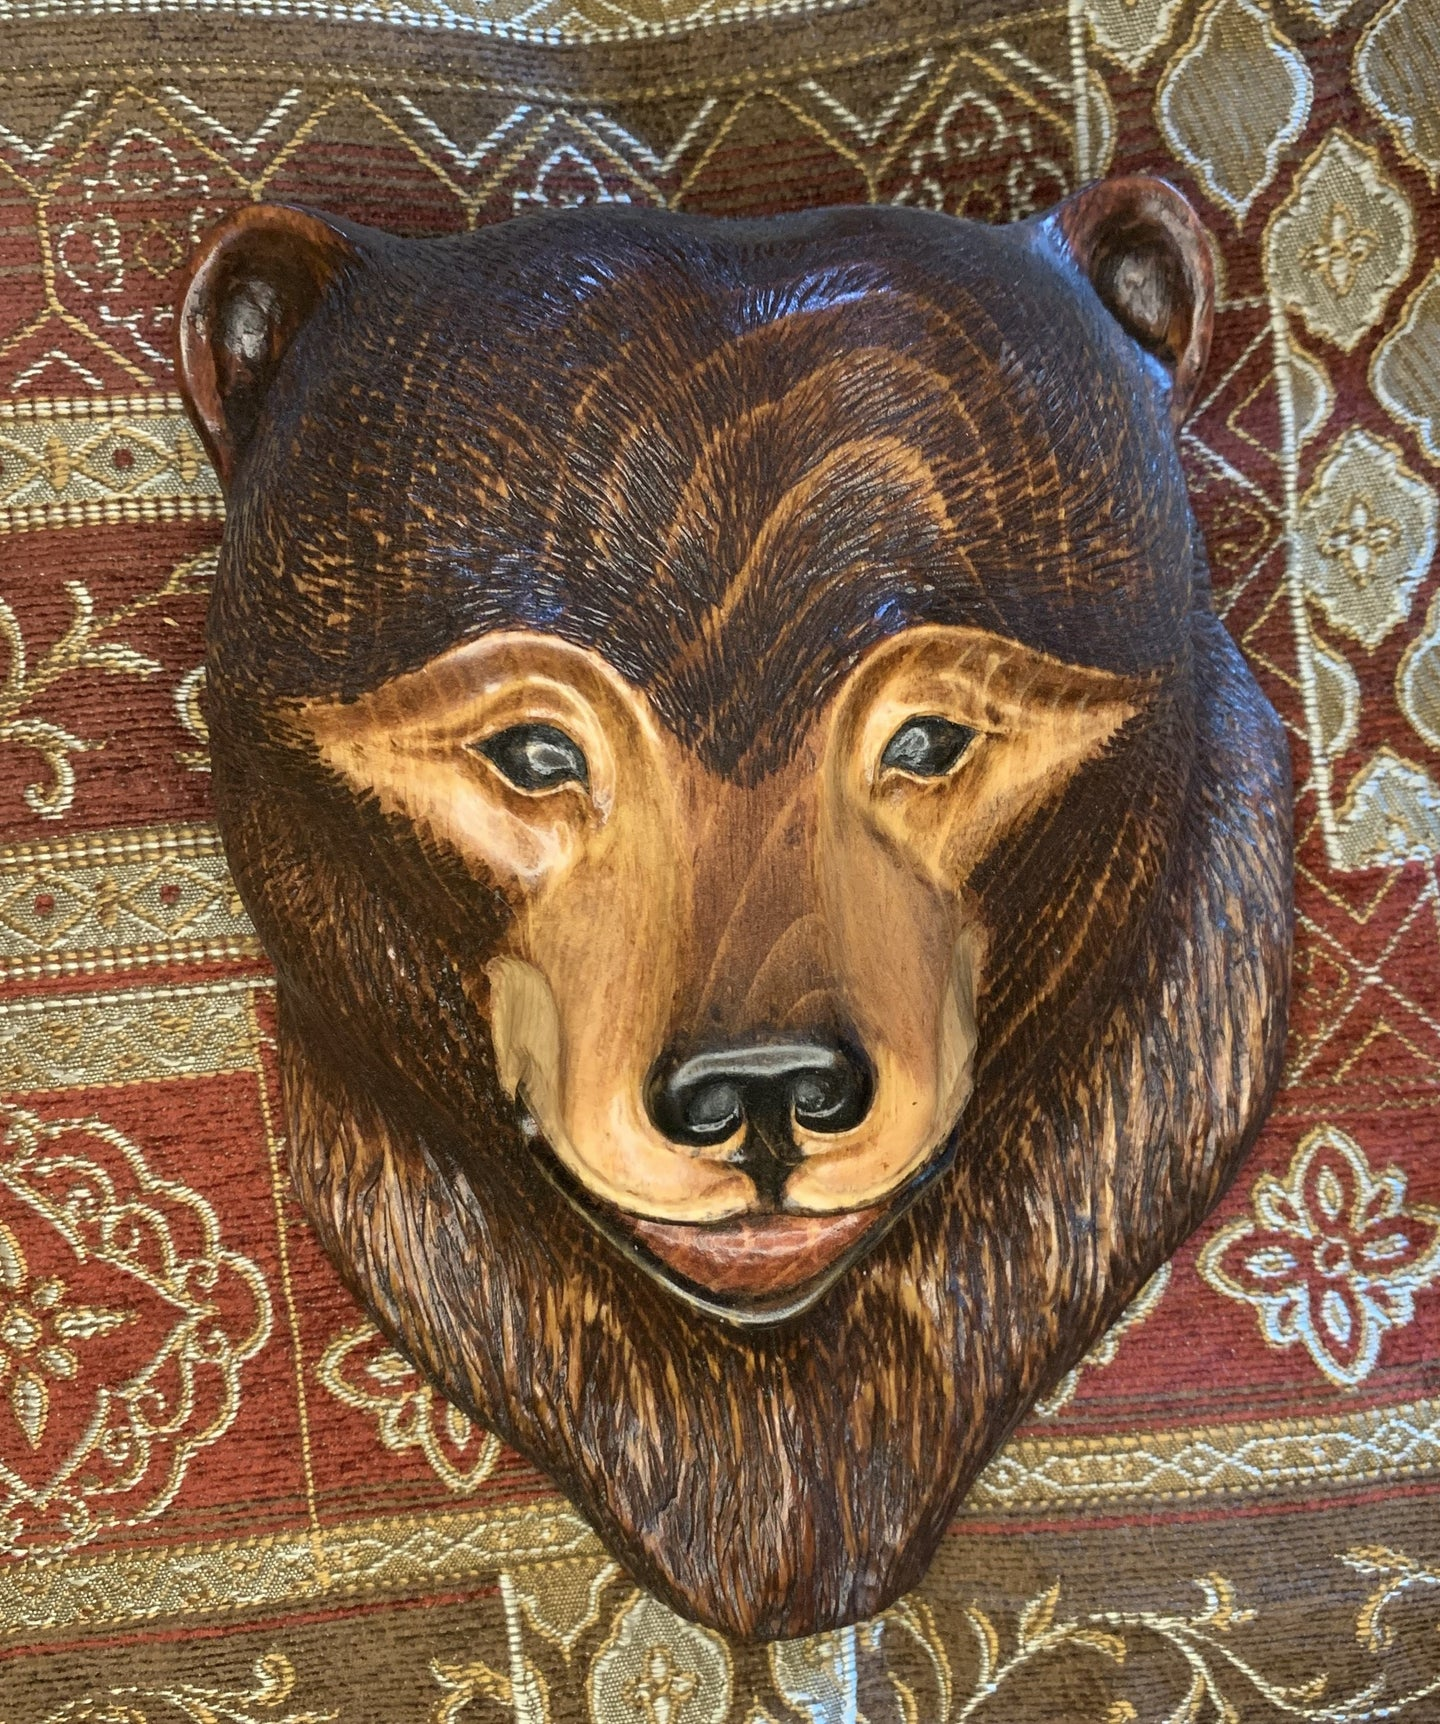 Cinnamon Bear Impression Wood Carving